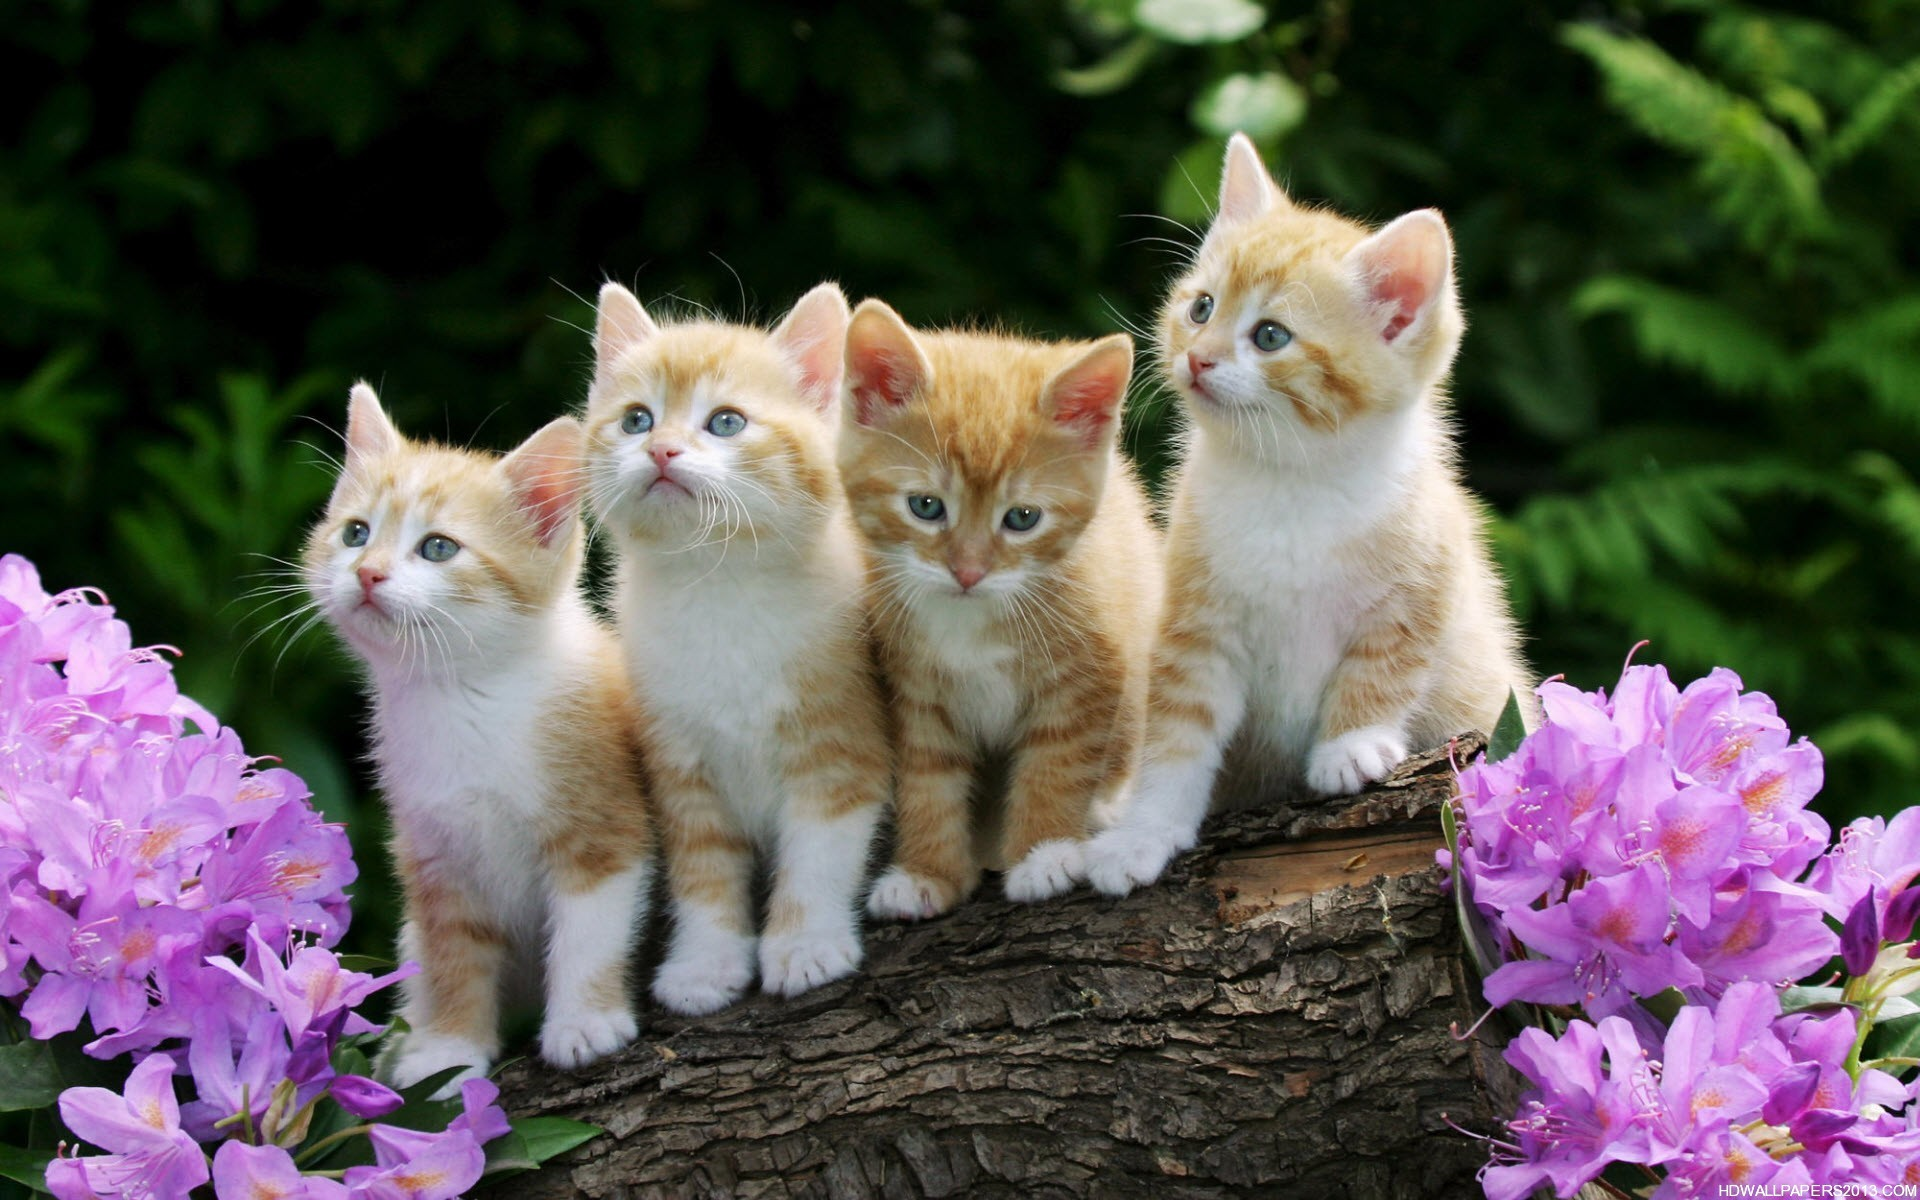 Cute Animal Wallpapers For Desktop Background Full Screen Posted By Samantha Johnson